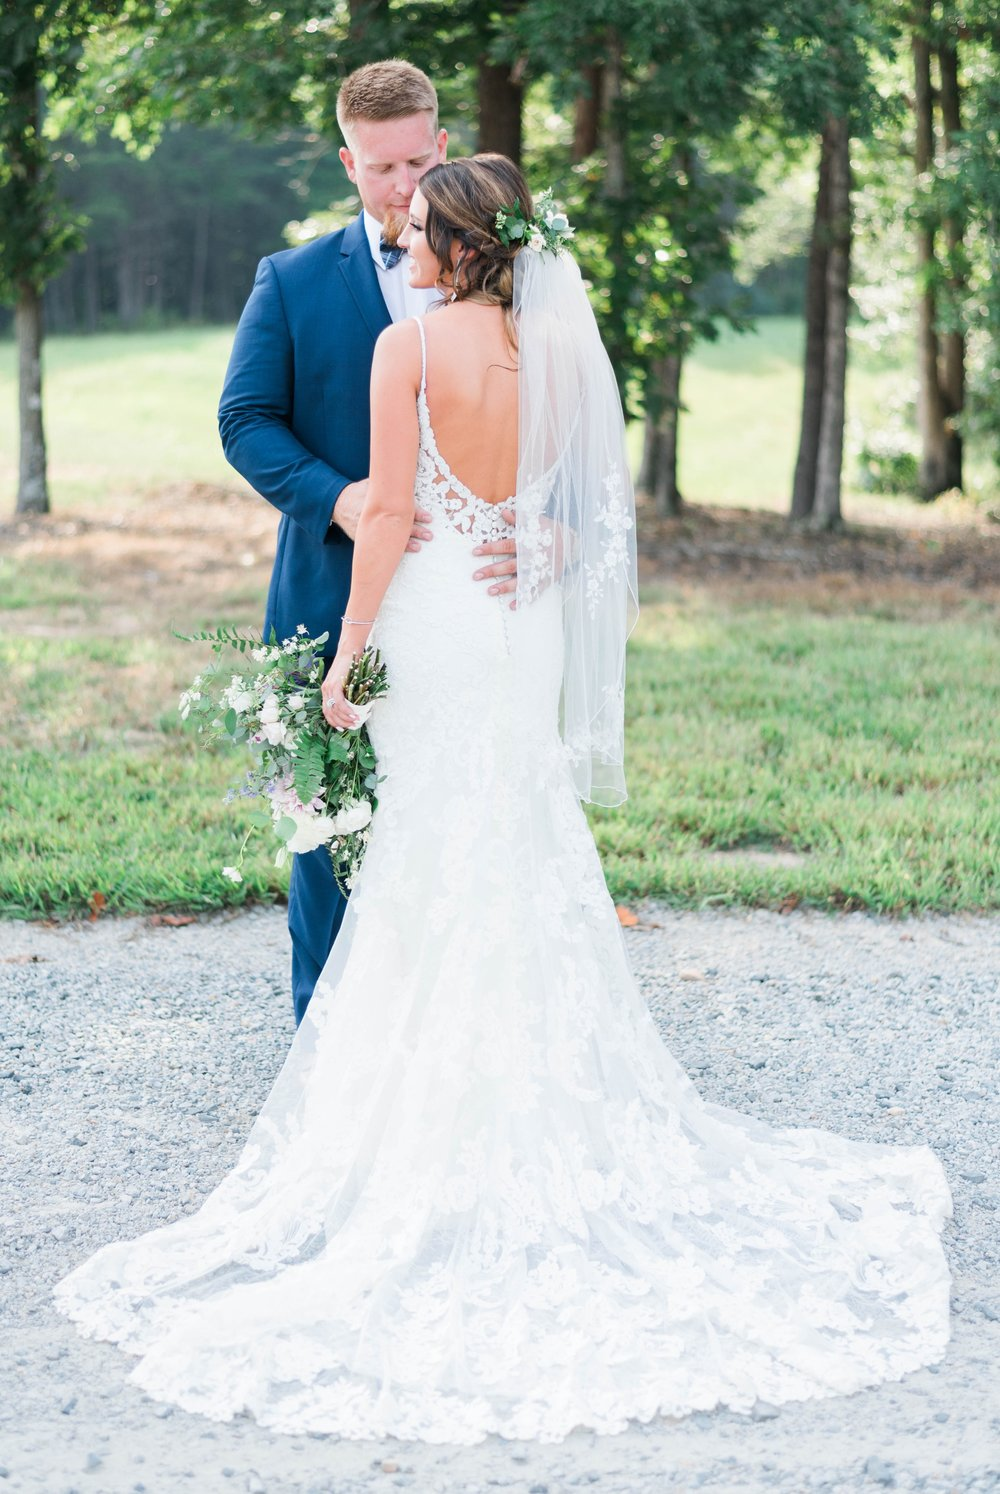 atkinson farms_VirginiaWeddingPhotographer_LynchburgWeddingPhotographer_DylanandLauren 24.jpg